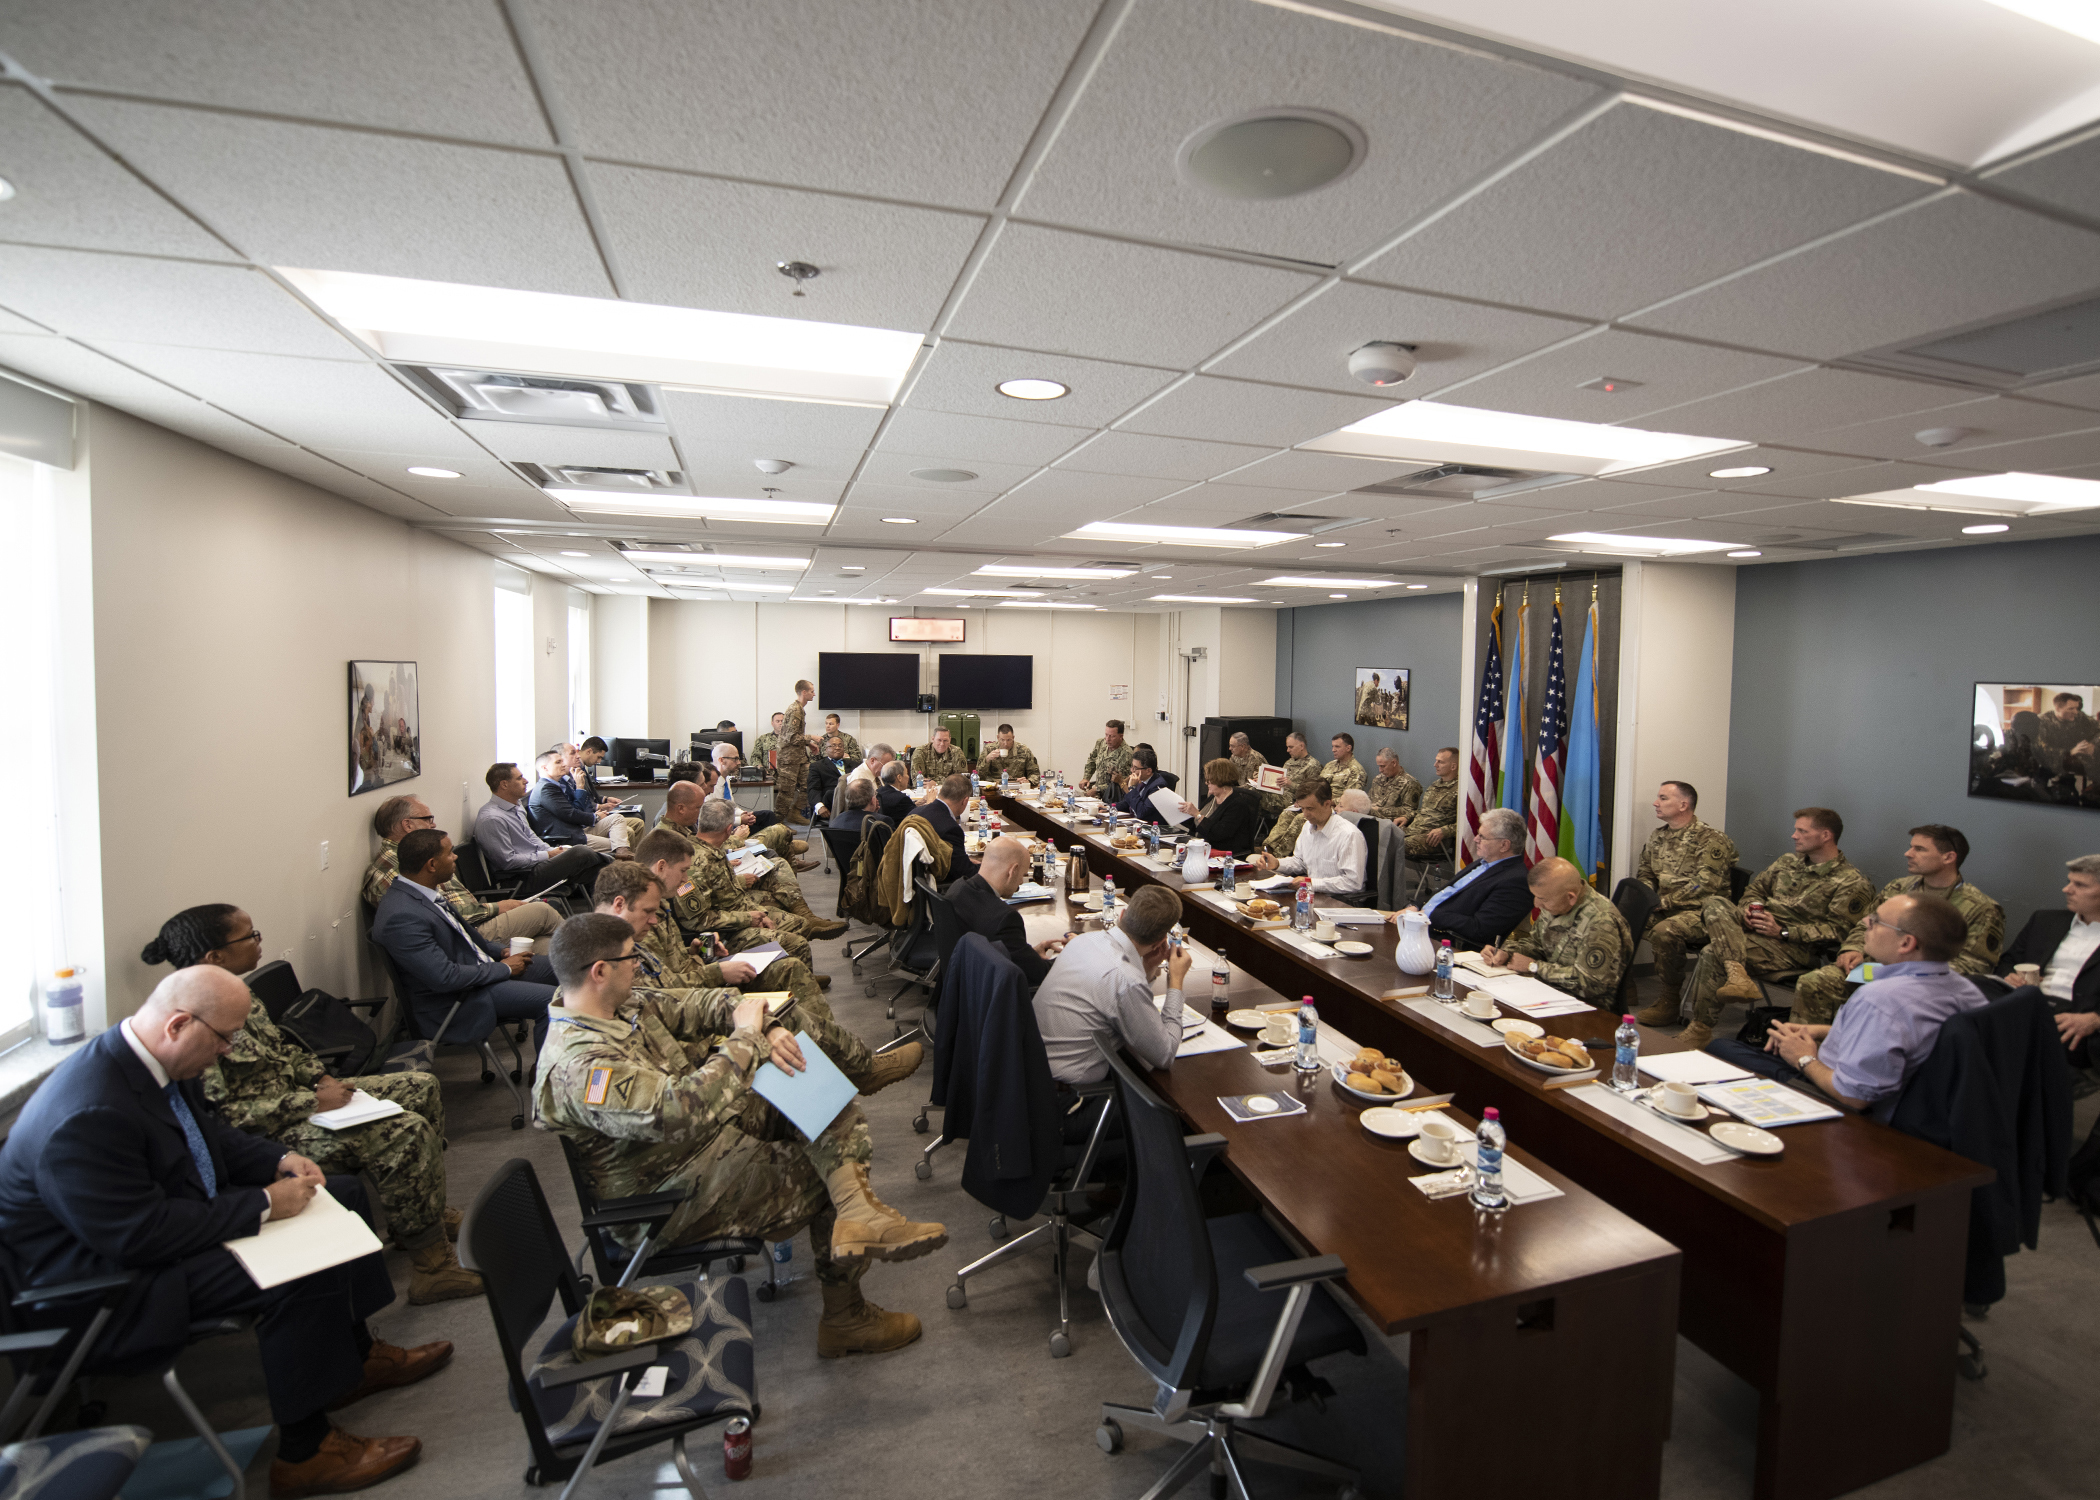 "U.S. Department of State and interagency officials attend a briefing titled ""Triggers of Regional Instability"" during the Combined Joint Task Force-Horn of Africa (CJTF-HOA) East Africa Security Forum (EASF) at Camp Lemonnier, Djibouti, Dec. 11, 2018. The EASF is an annual opportunity for CJTF-HOA and interagency leaders to sync, assess and align efforts to develop synchronized courses of action that support common goals. (U.S. Air Force photo by Tech. Sgt. Shawn Nickel)"